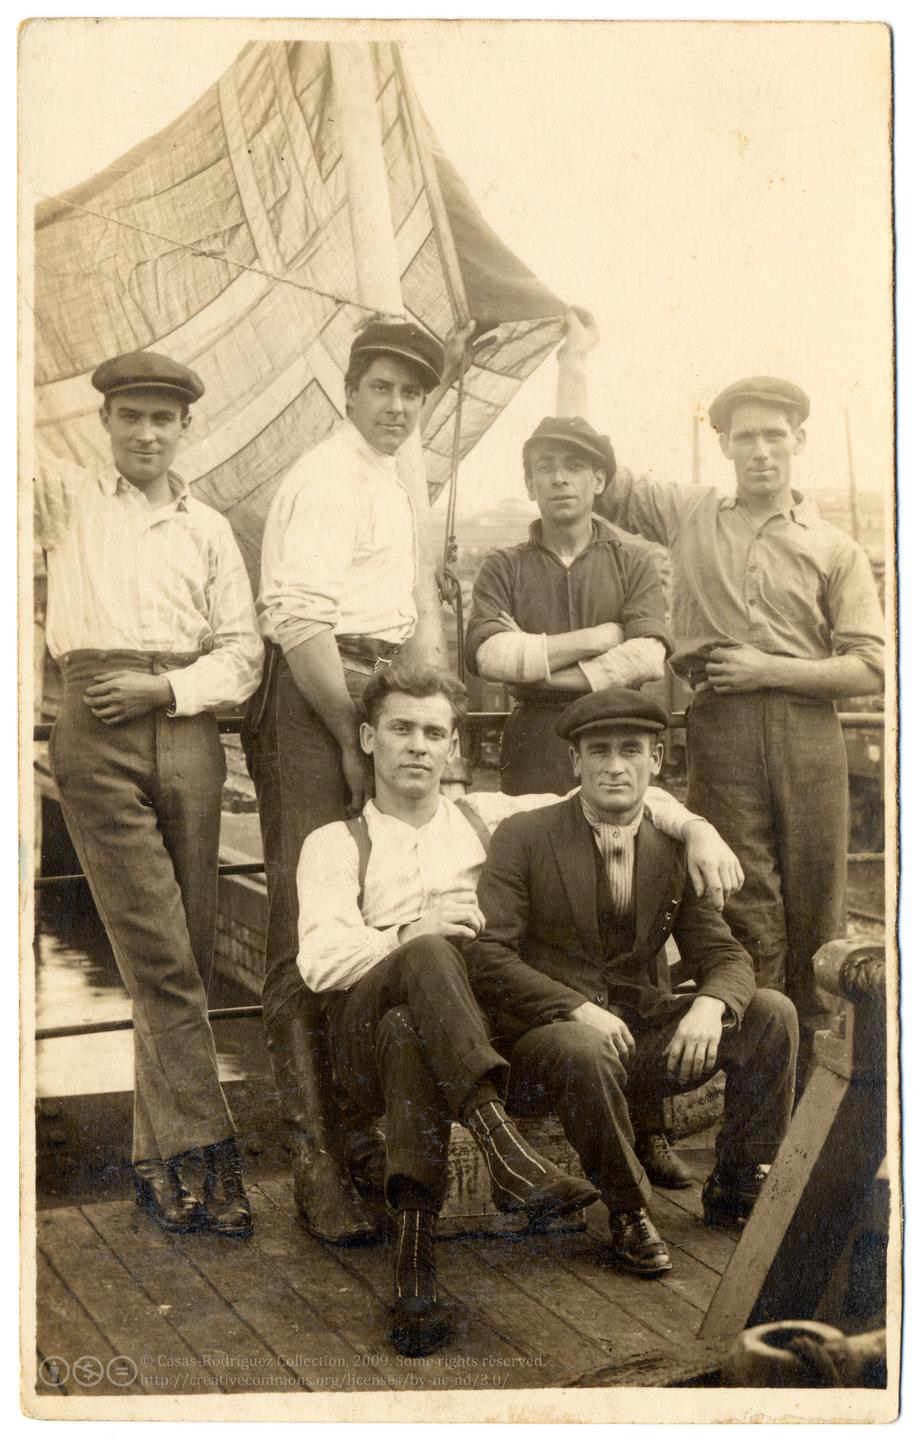 Shipmates Tough and Tender. Italy c. 1925. Casas-Rodríguez Collection, CC BY NC ND 3.0